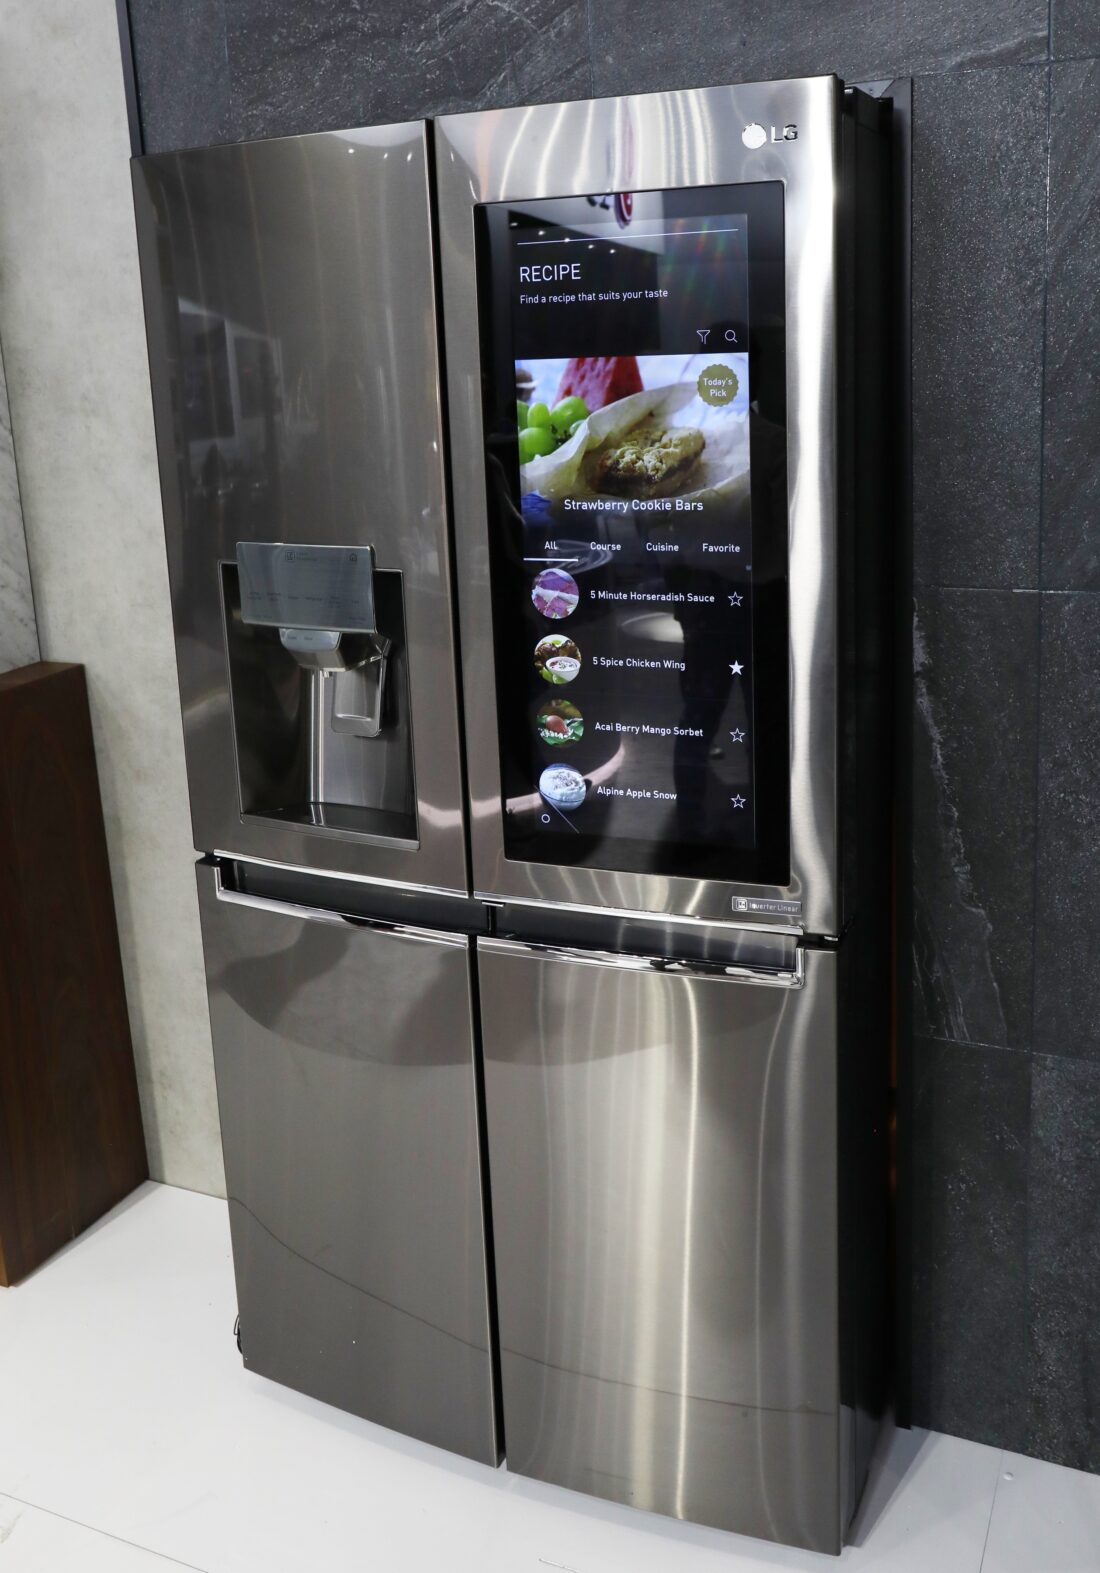 An LG InstaView Door-in-Door refrigerator in the LG display zone at CES 2017